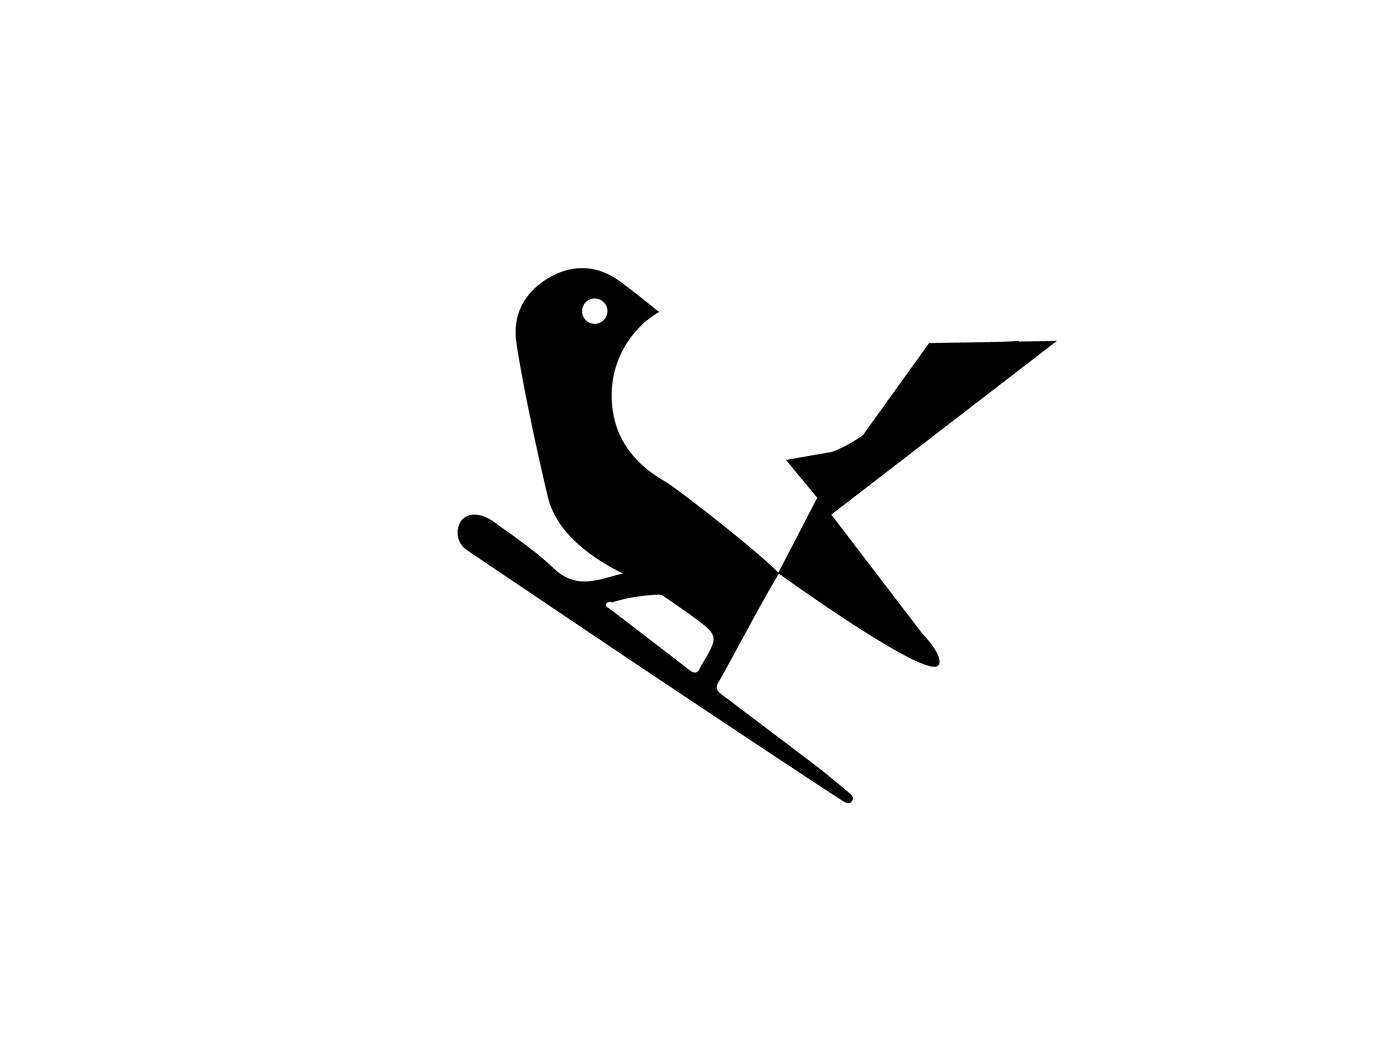 logo design bird by martigny matthieu